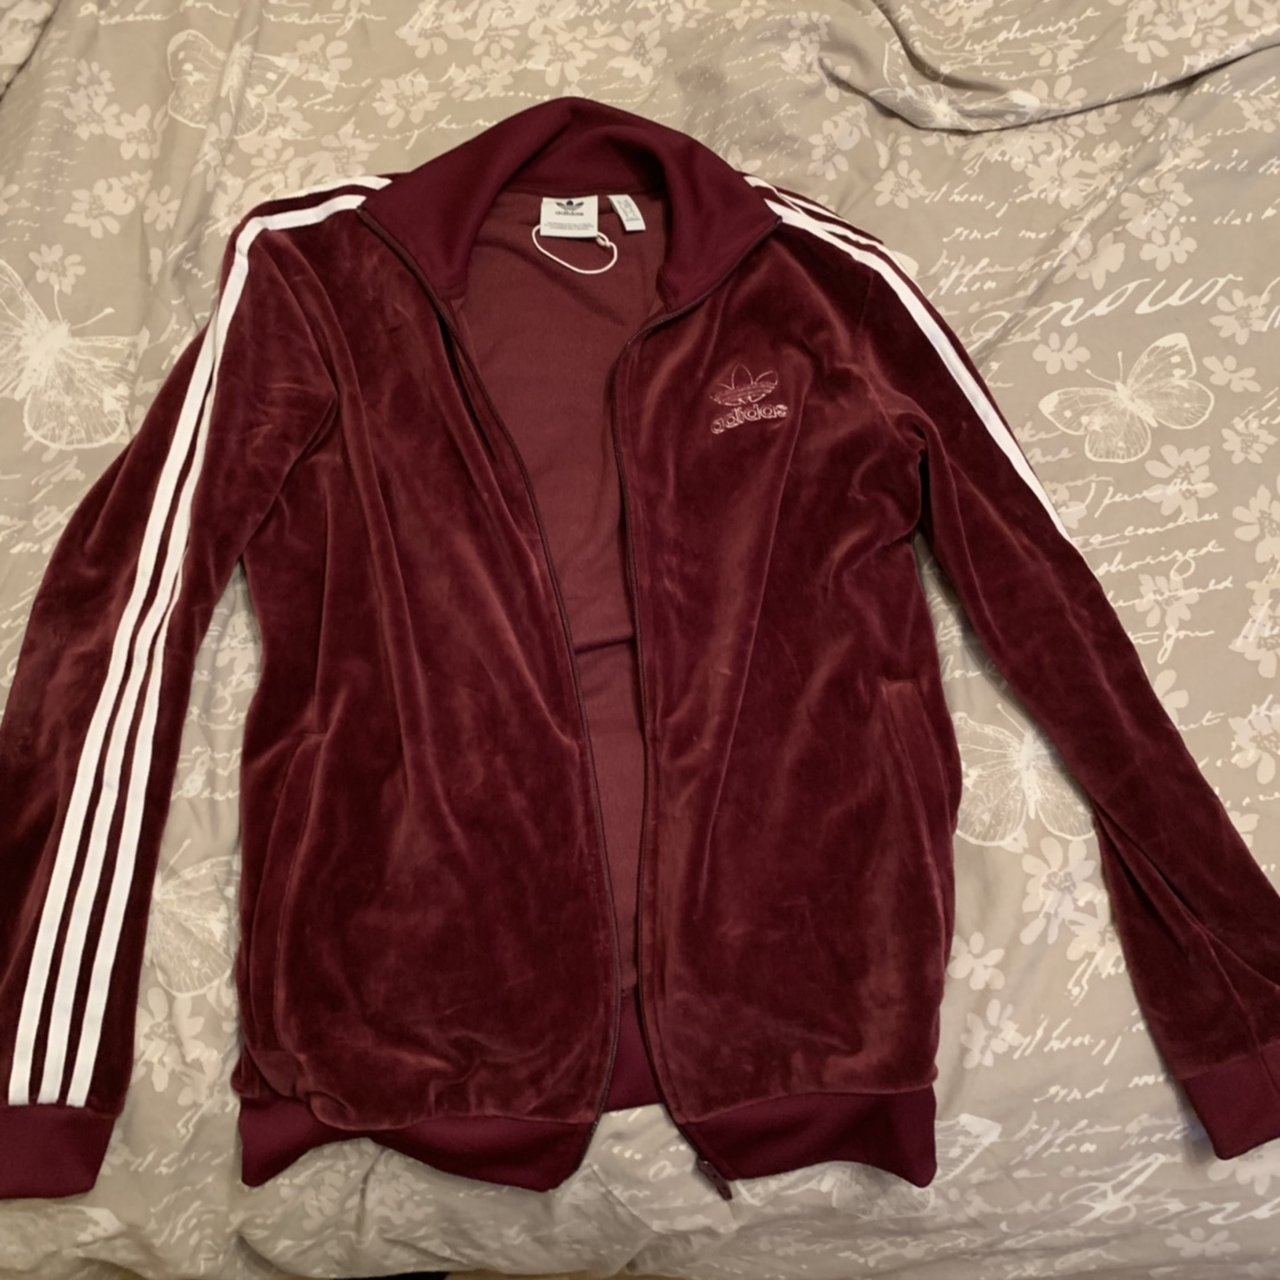 Maroon Adidas tracksuit. Too big for me a615402332be